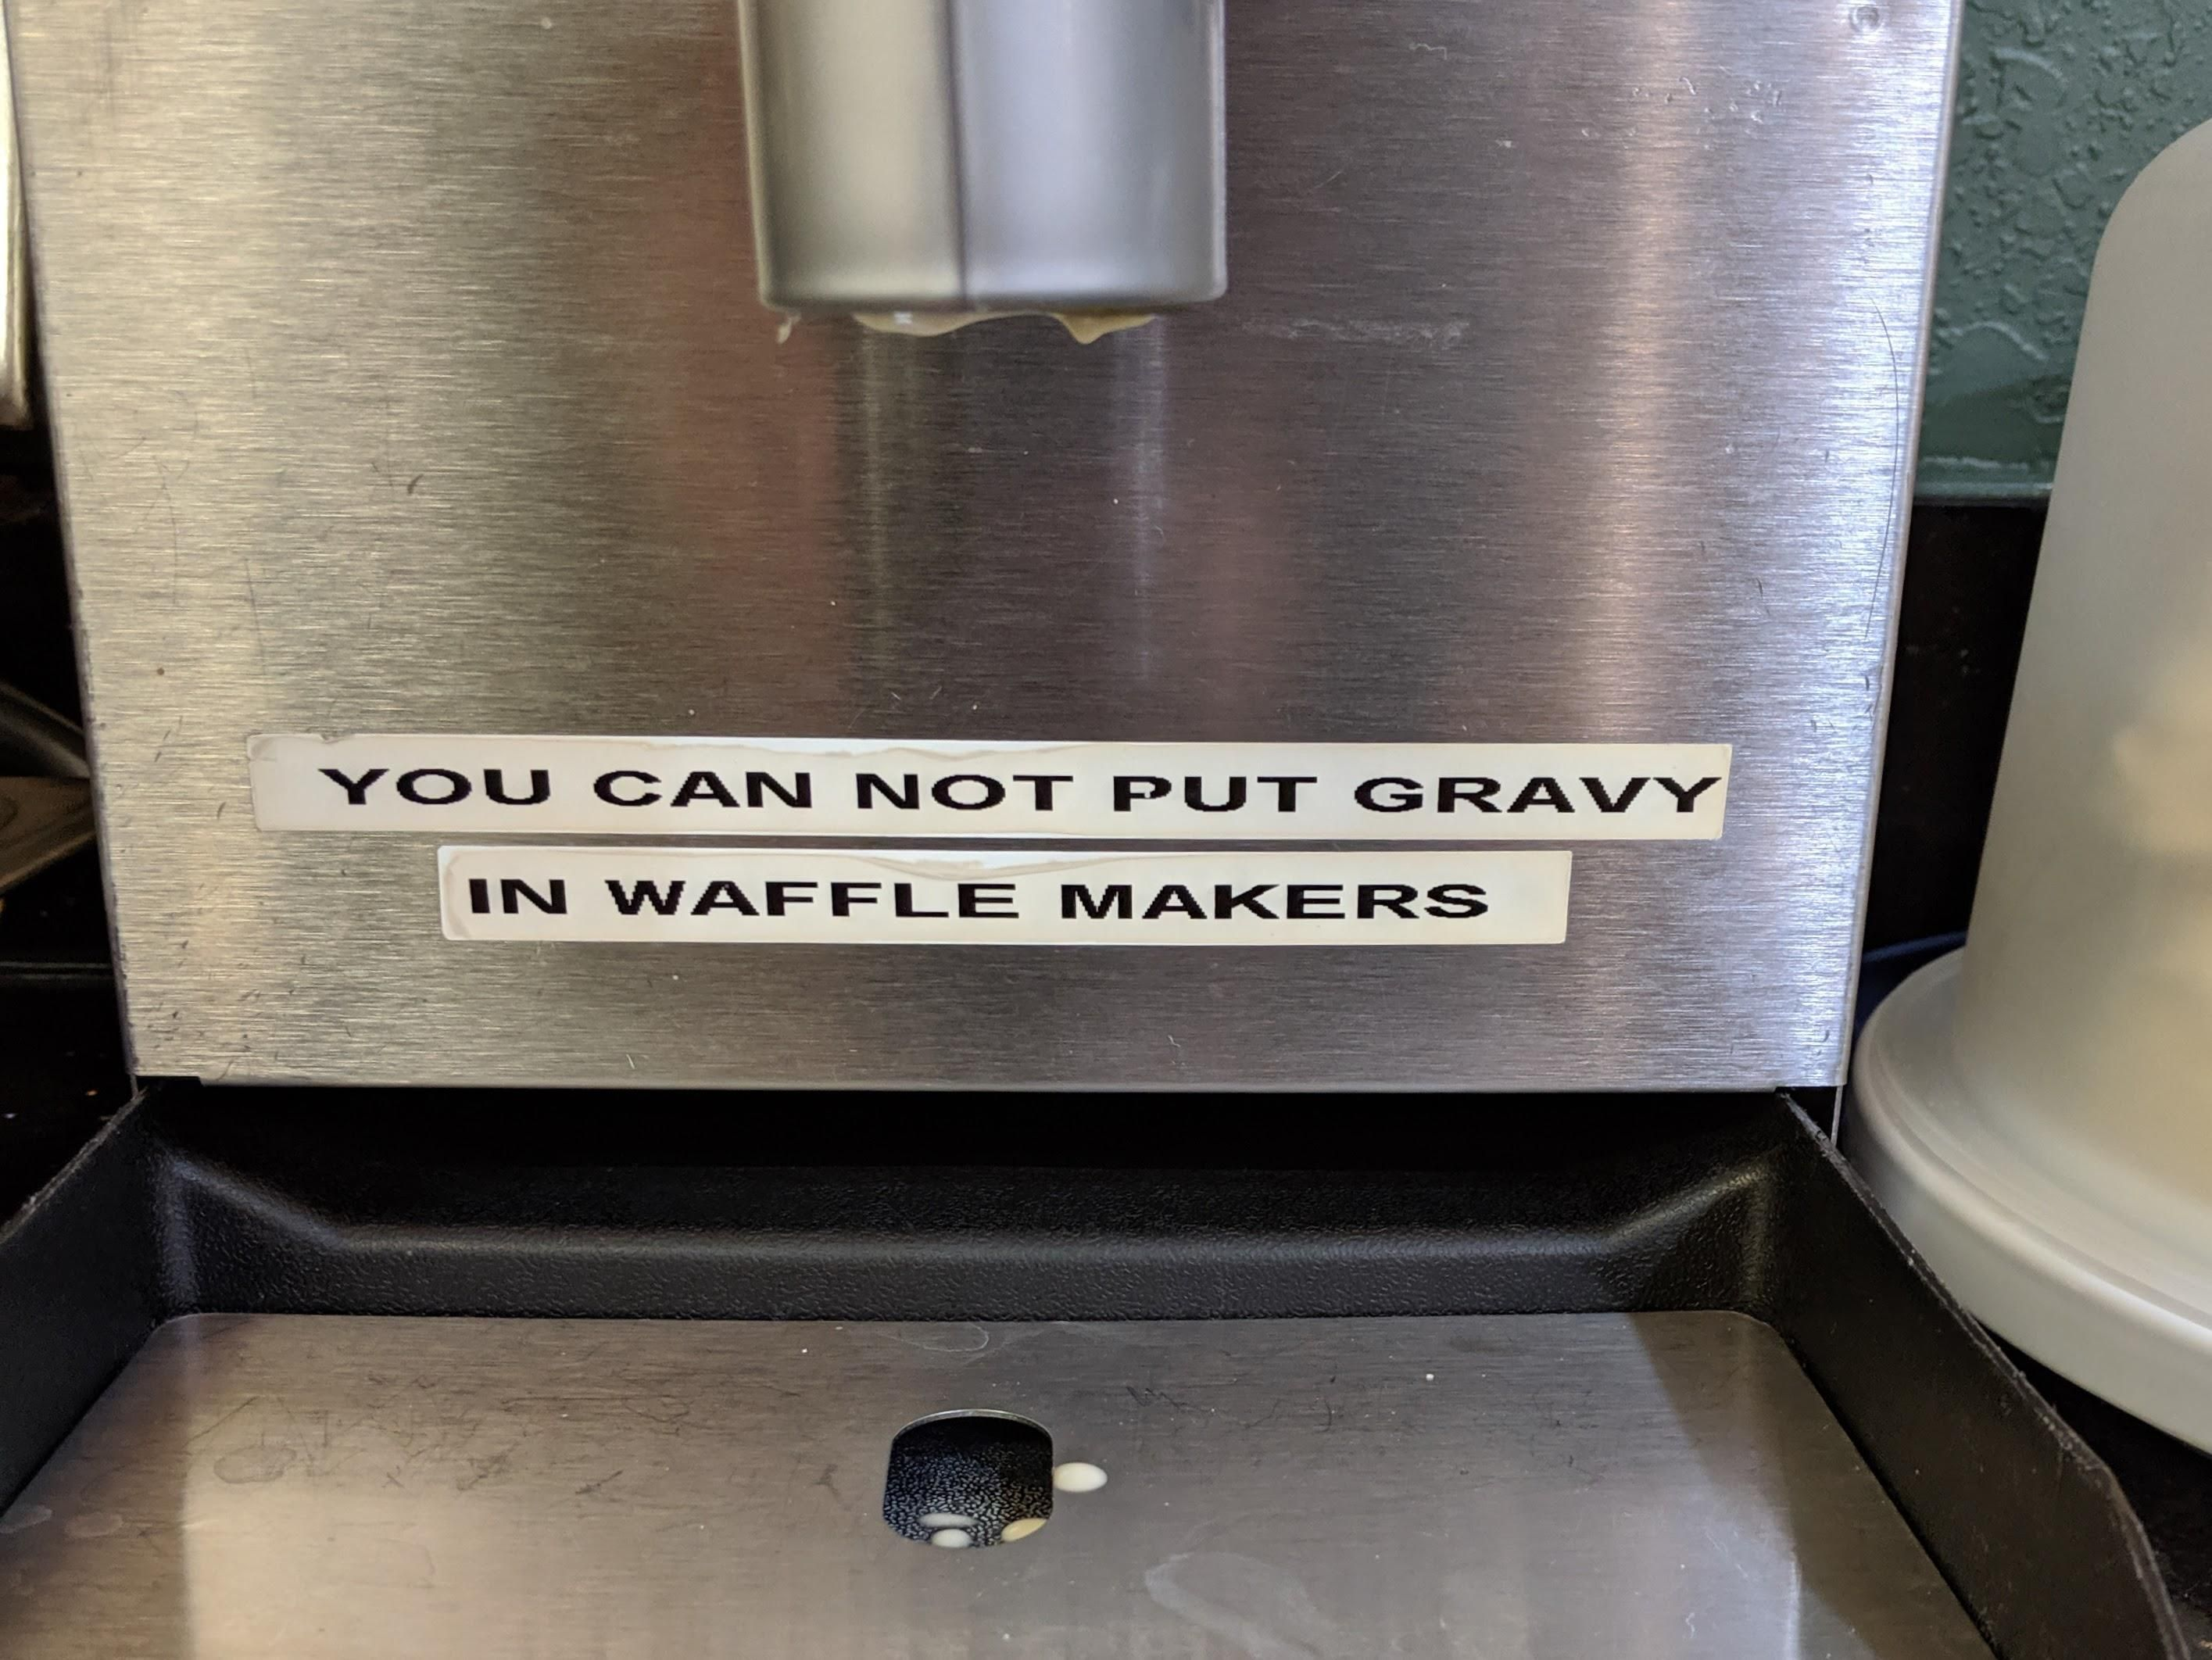 I really want to meet the aspiring chef who made this sign necessary.